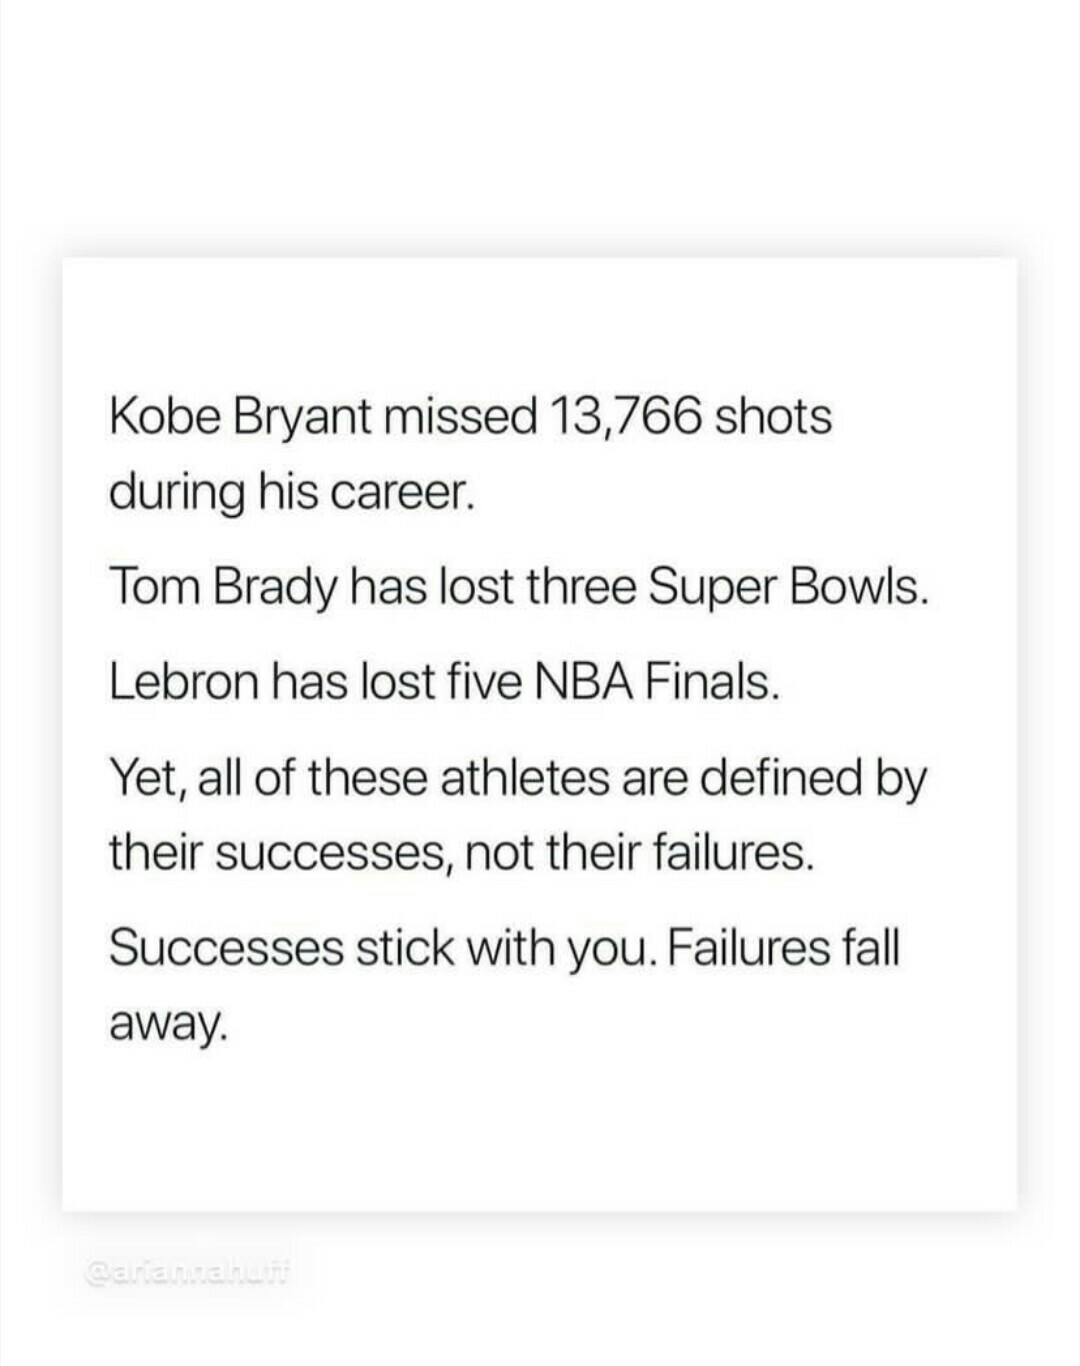 Kobe Bryant missed 13,766 shots during his career. Tom Brady has lost three Super Bowls. Lebron has lost five NBA Finals. Yet, all of these athletes are defined by their successes, not their failures. Successes stick with you. Failures fall away. https://inspirational.ly